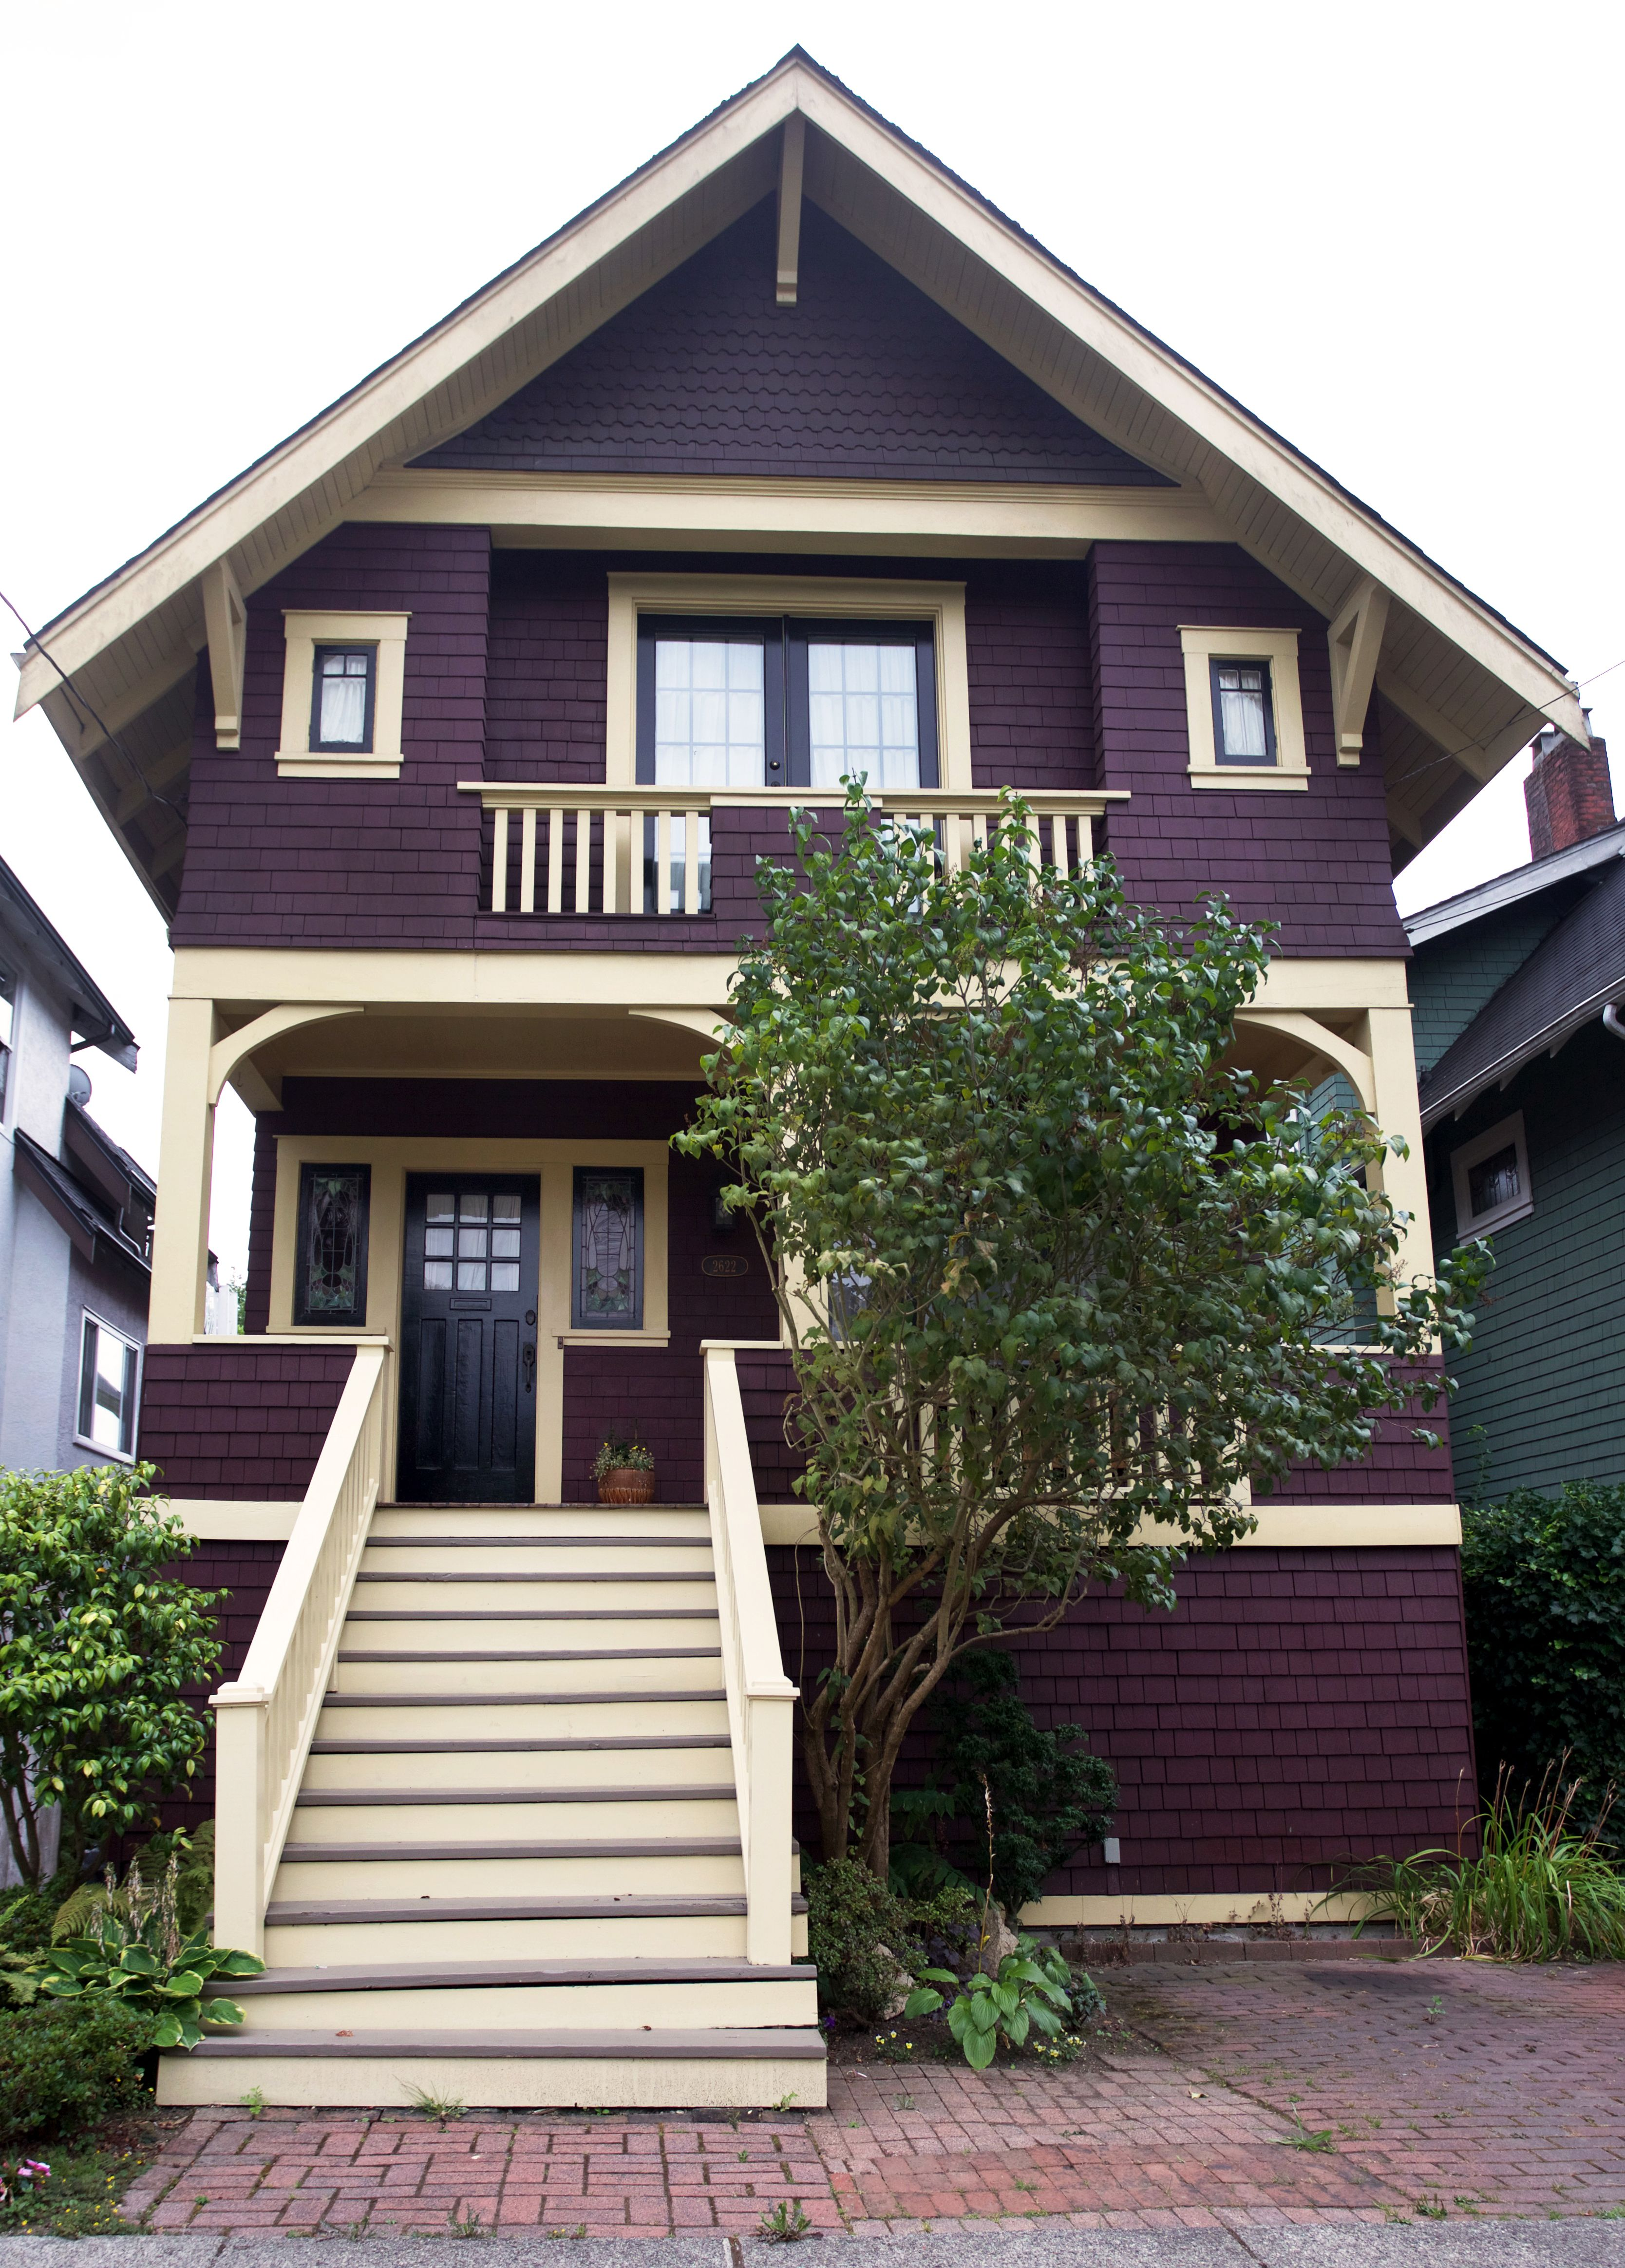 Park Art|My WordPress Blog_How Long Does It Take To Paint A House Exterior By Yourself